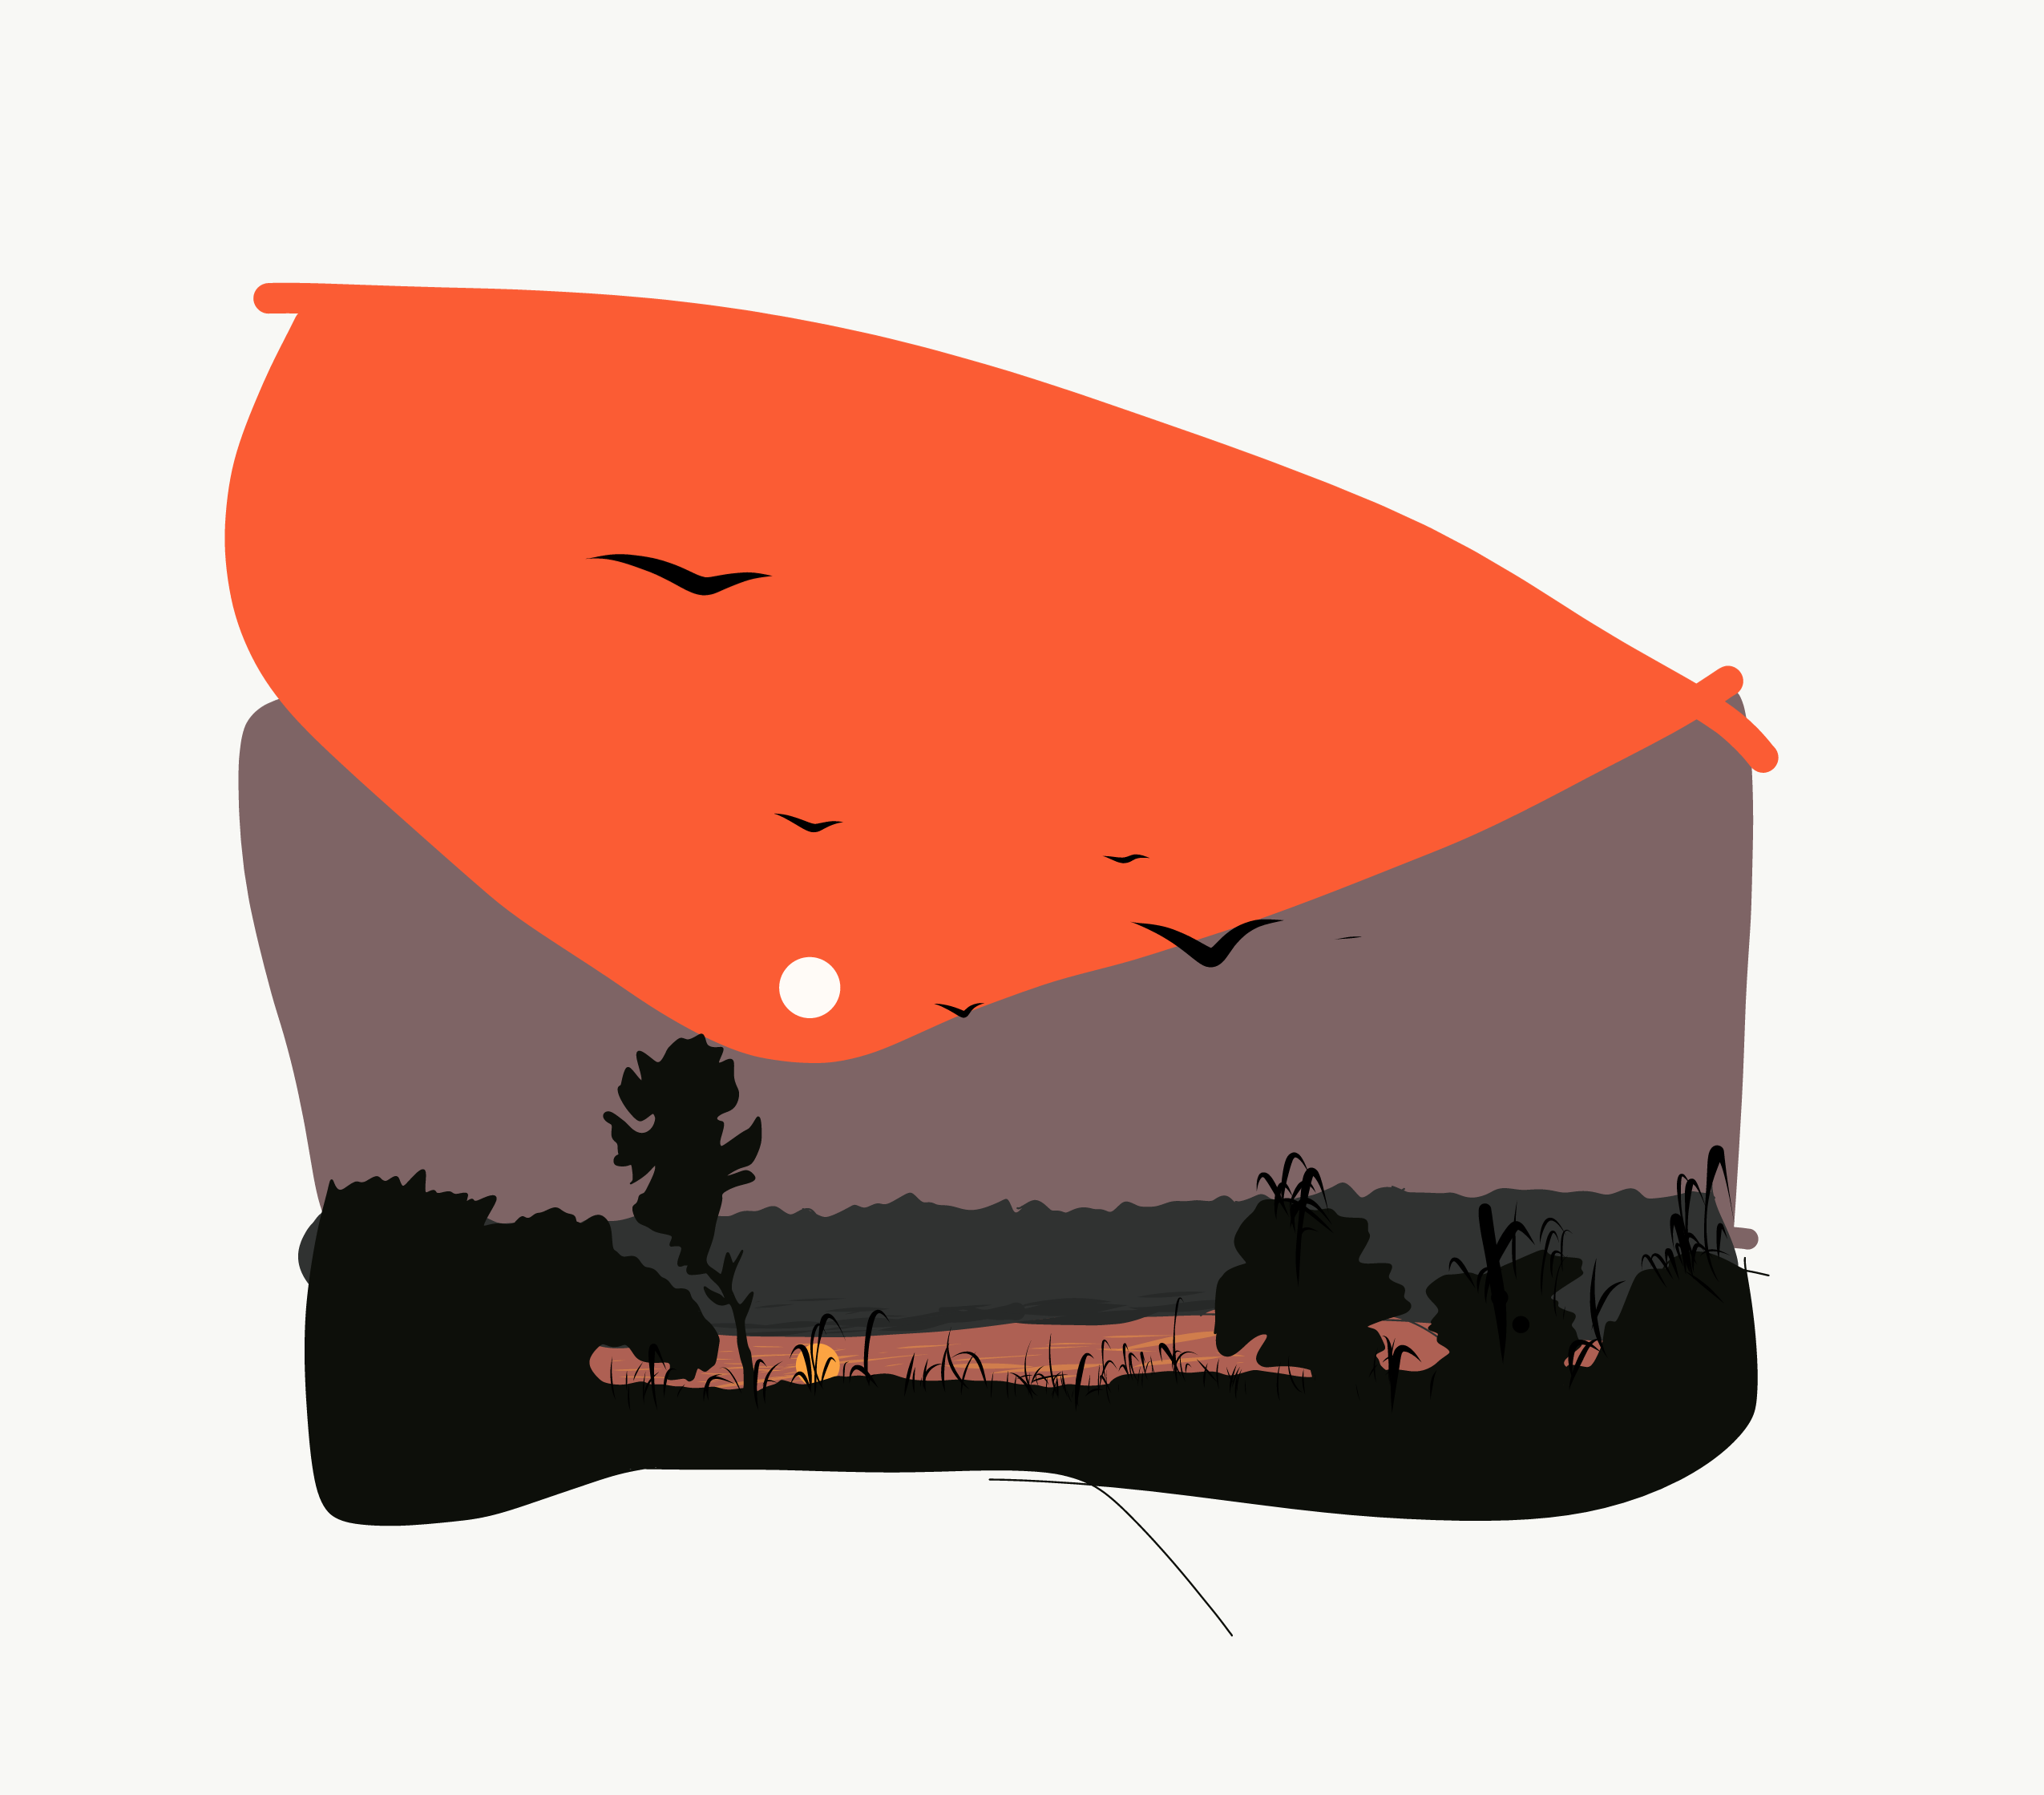 Sunrise illustration